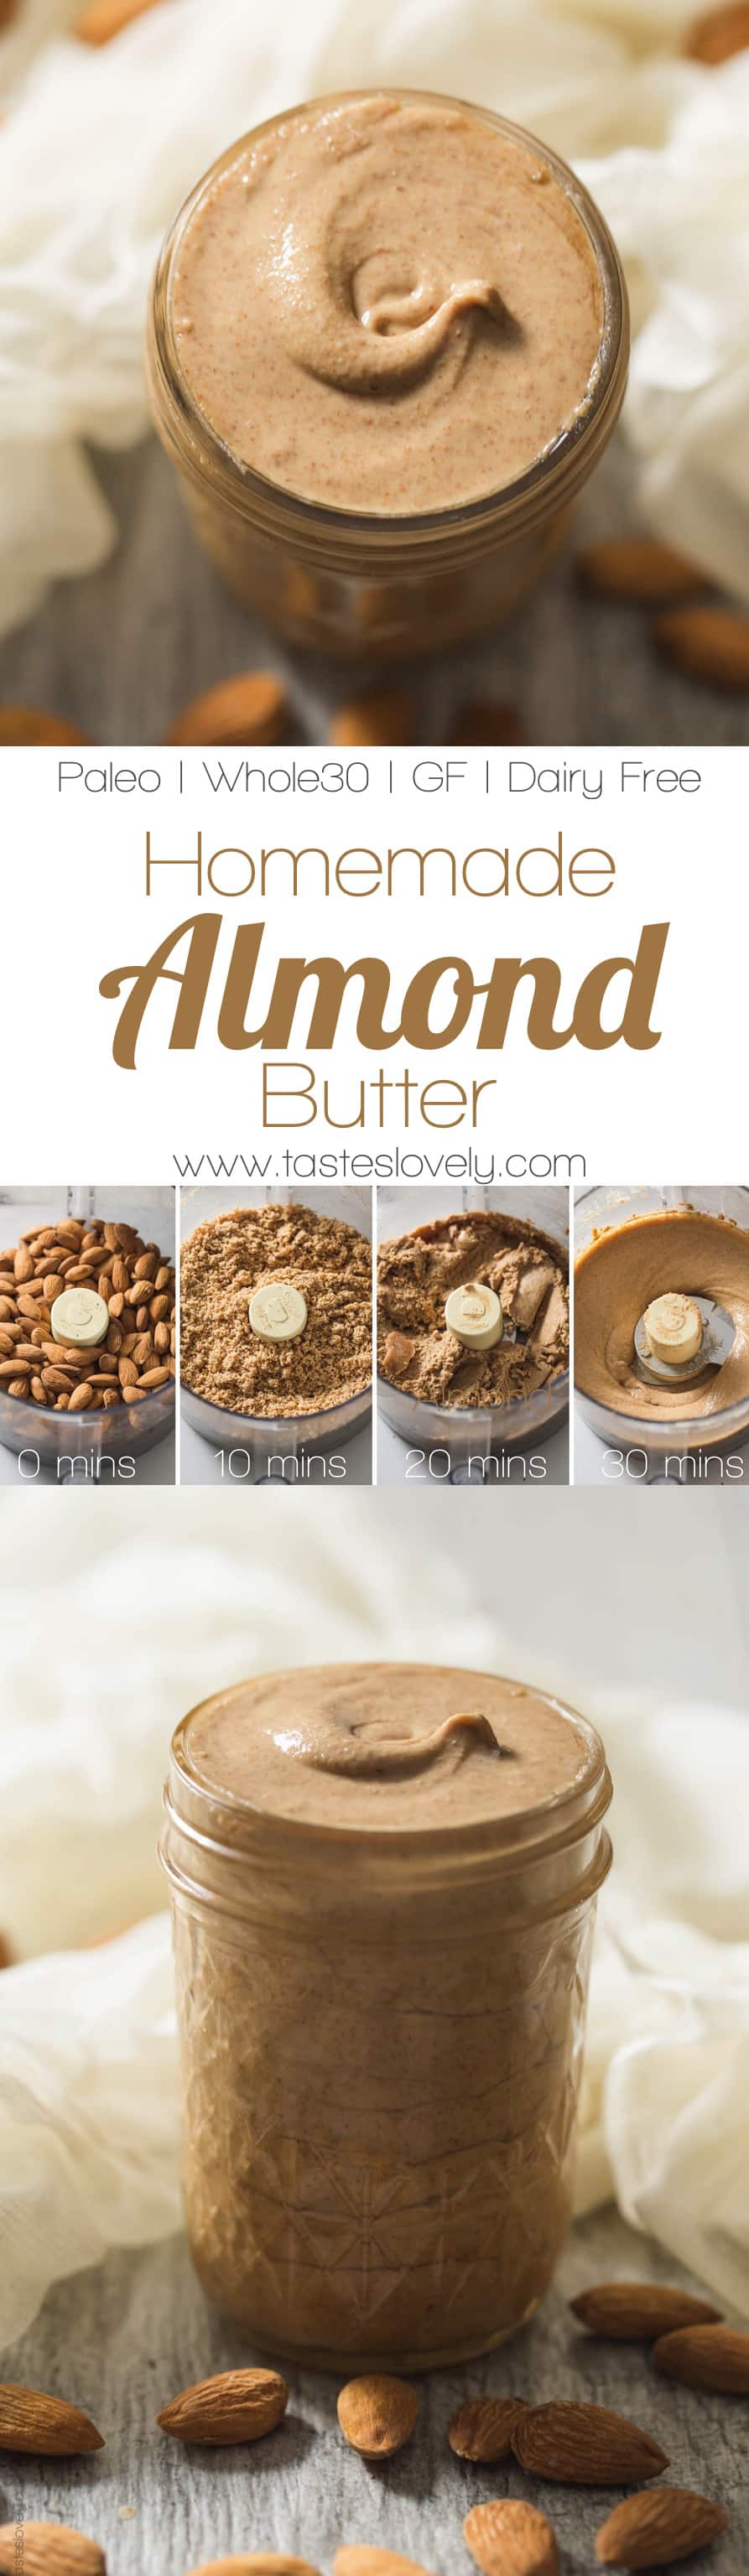 Homemade Almond Butter made in your food processor! (paleo, whole30, gluten free, dairy free, grain free, low carb)